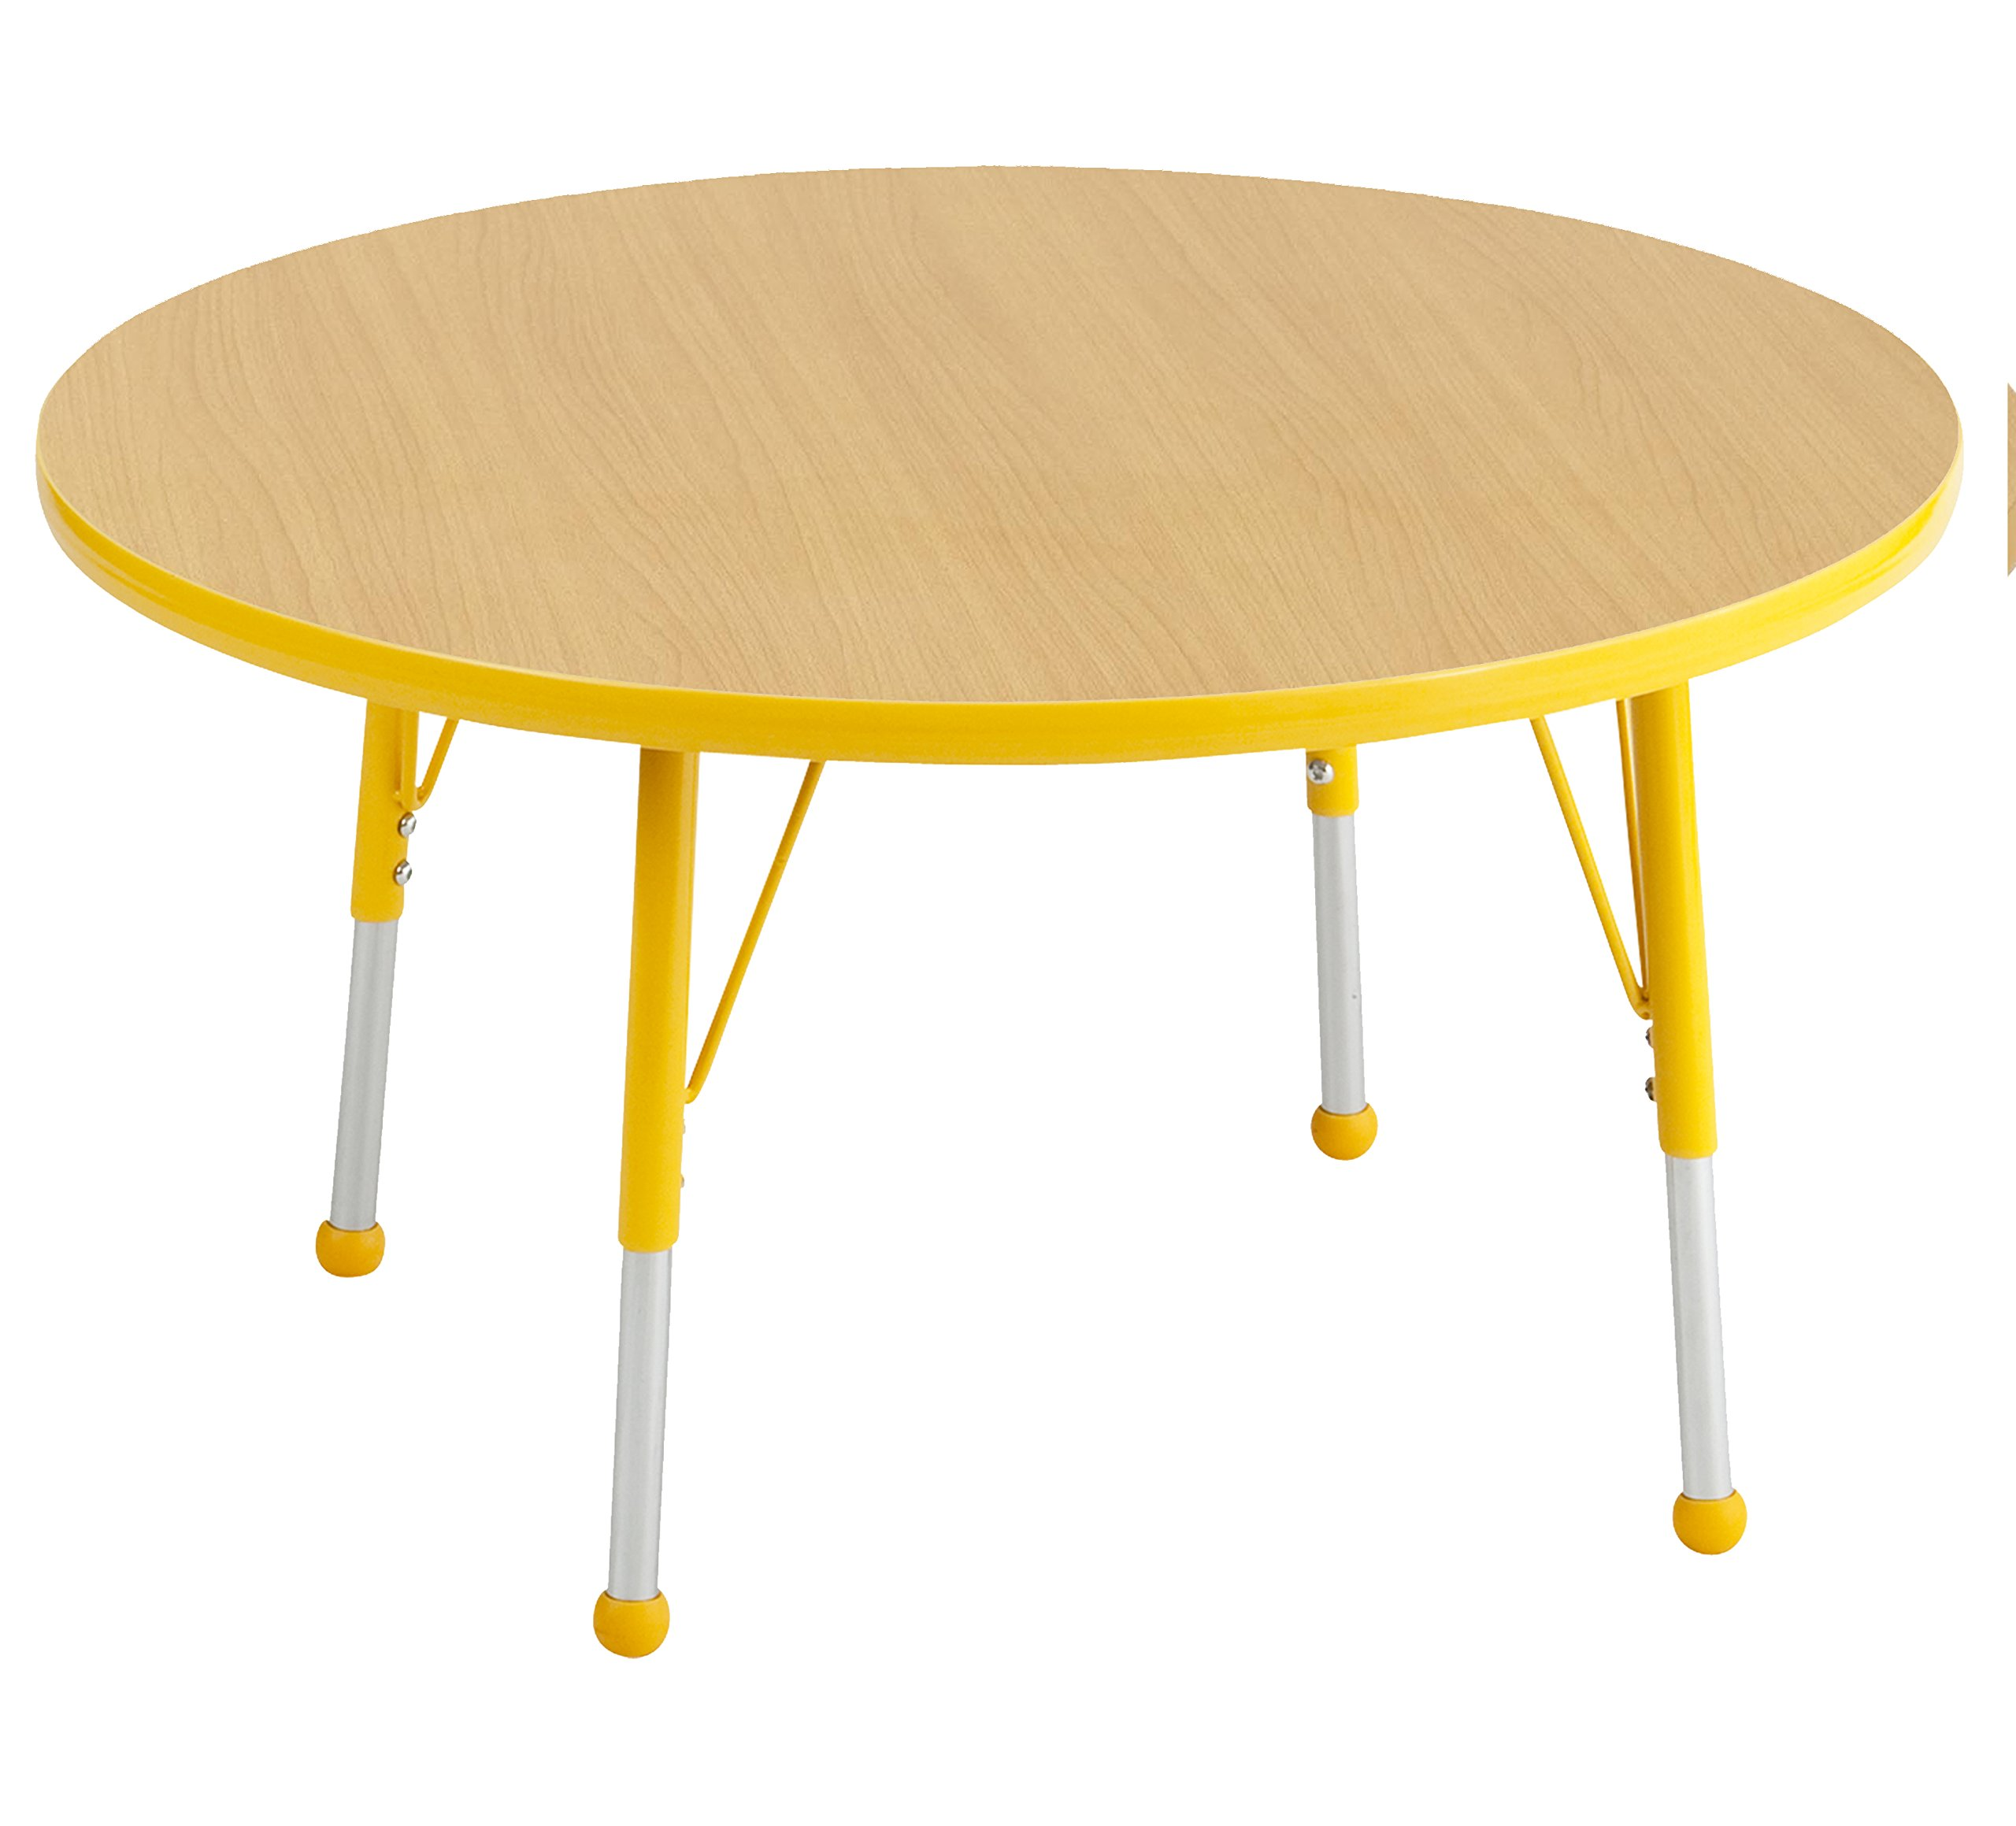 ECR4Kids Thermo-fused 36'' Round School Activity Table, Standard Legs w/ Ball Glides, Adjustable Height 19-30 inch (Maple/Yellow)